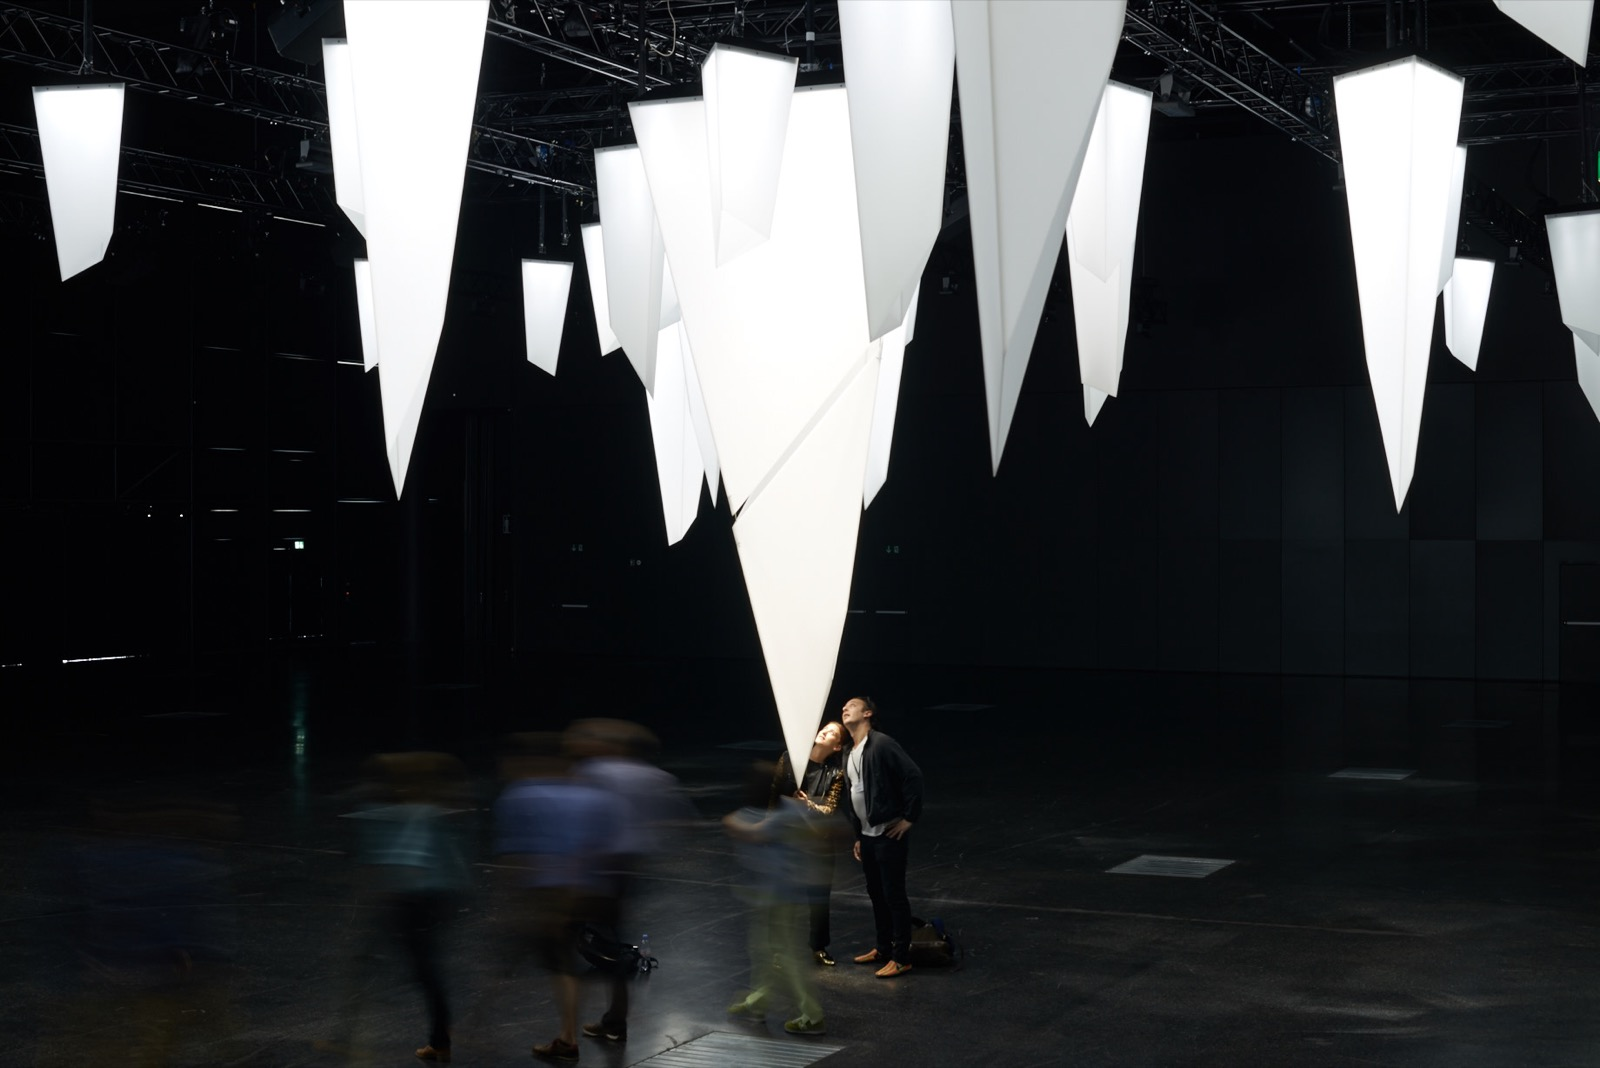 TriangularSeries_Basel-AllisonWood-JamieZigelbaum_photoCredit-JamesHarris